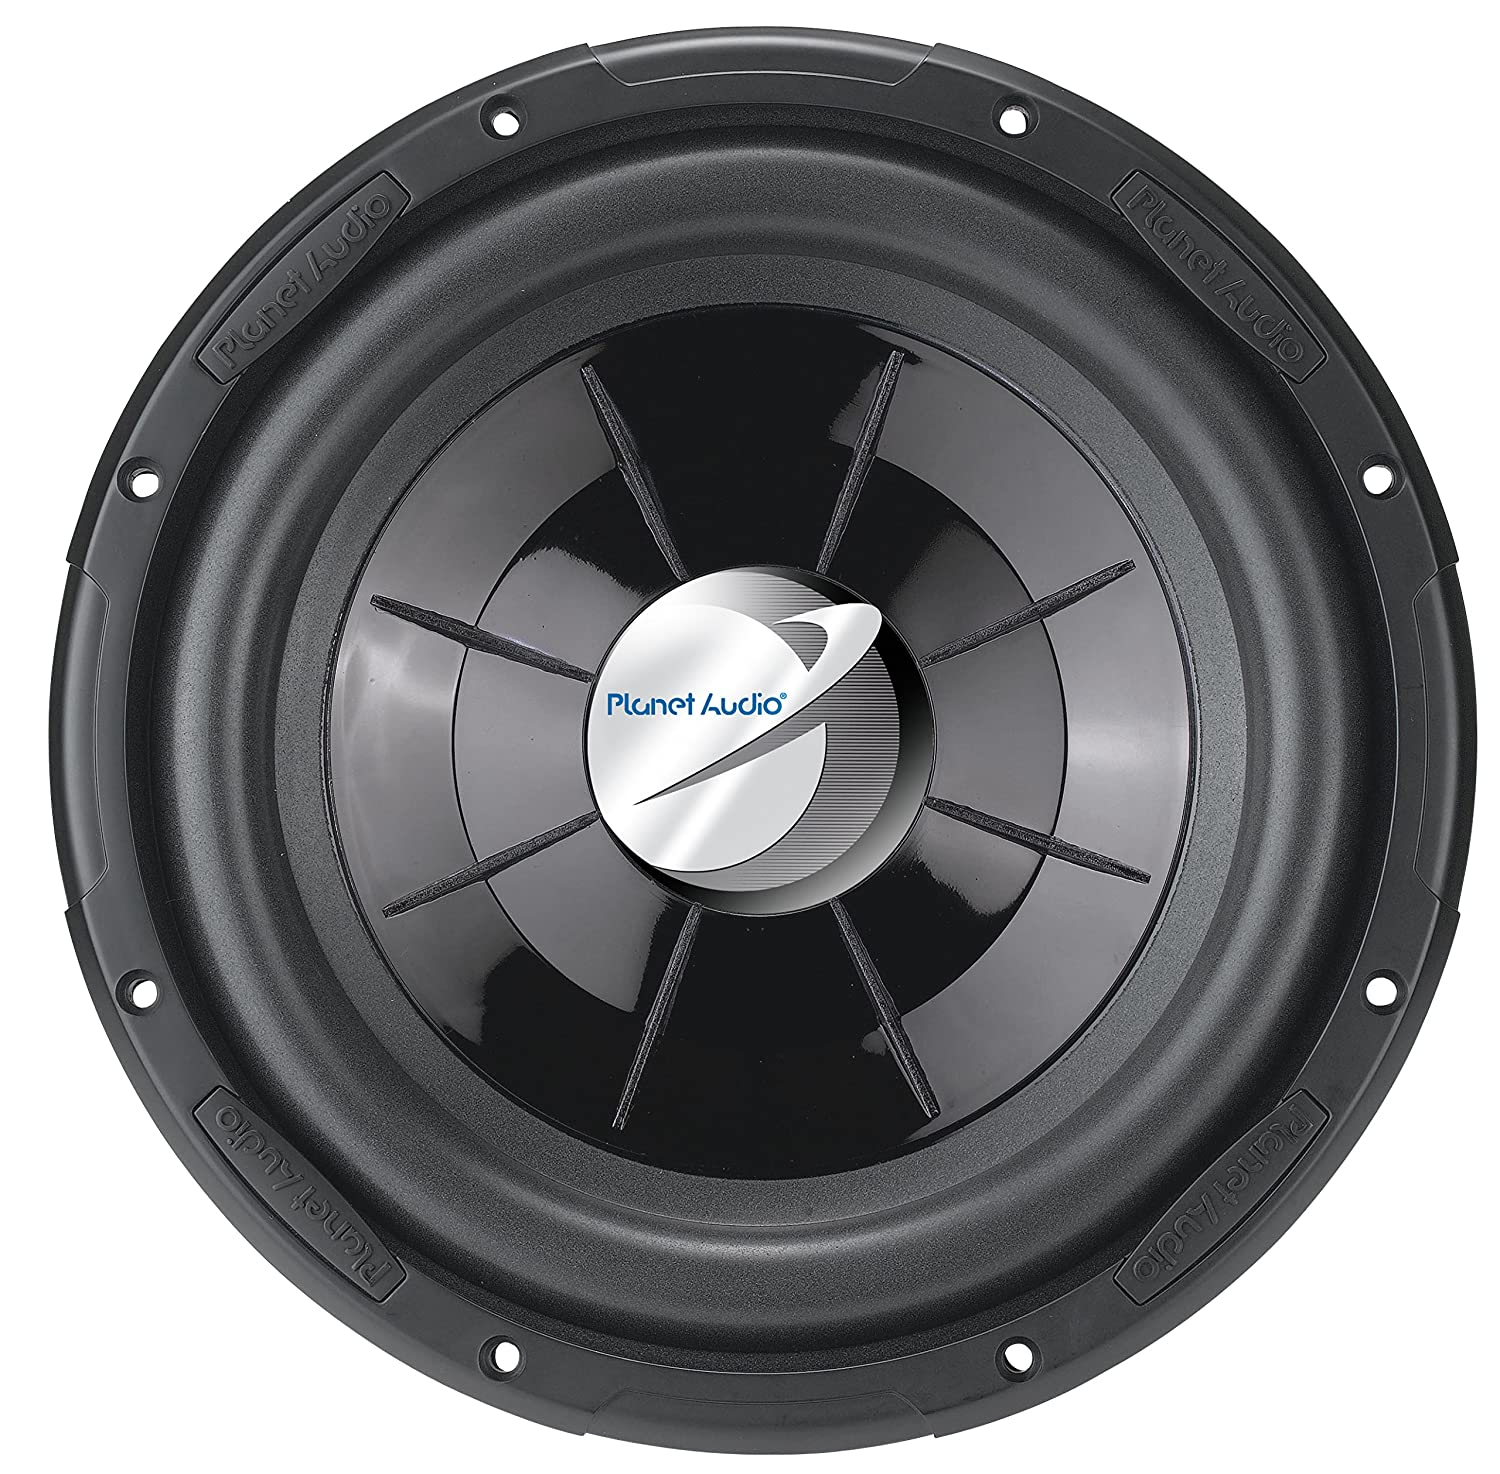 Planet Audio PX10 10-Inch Flat Subwoofer